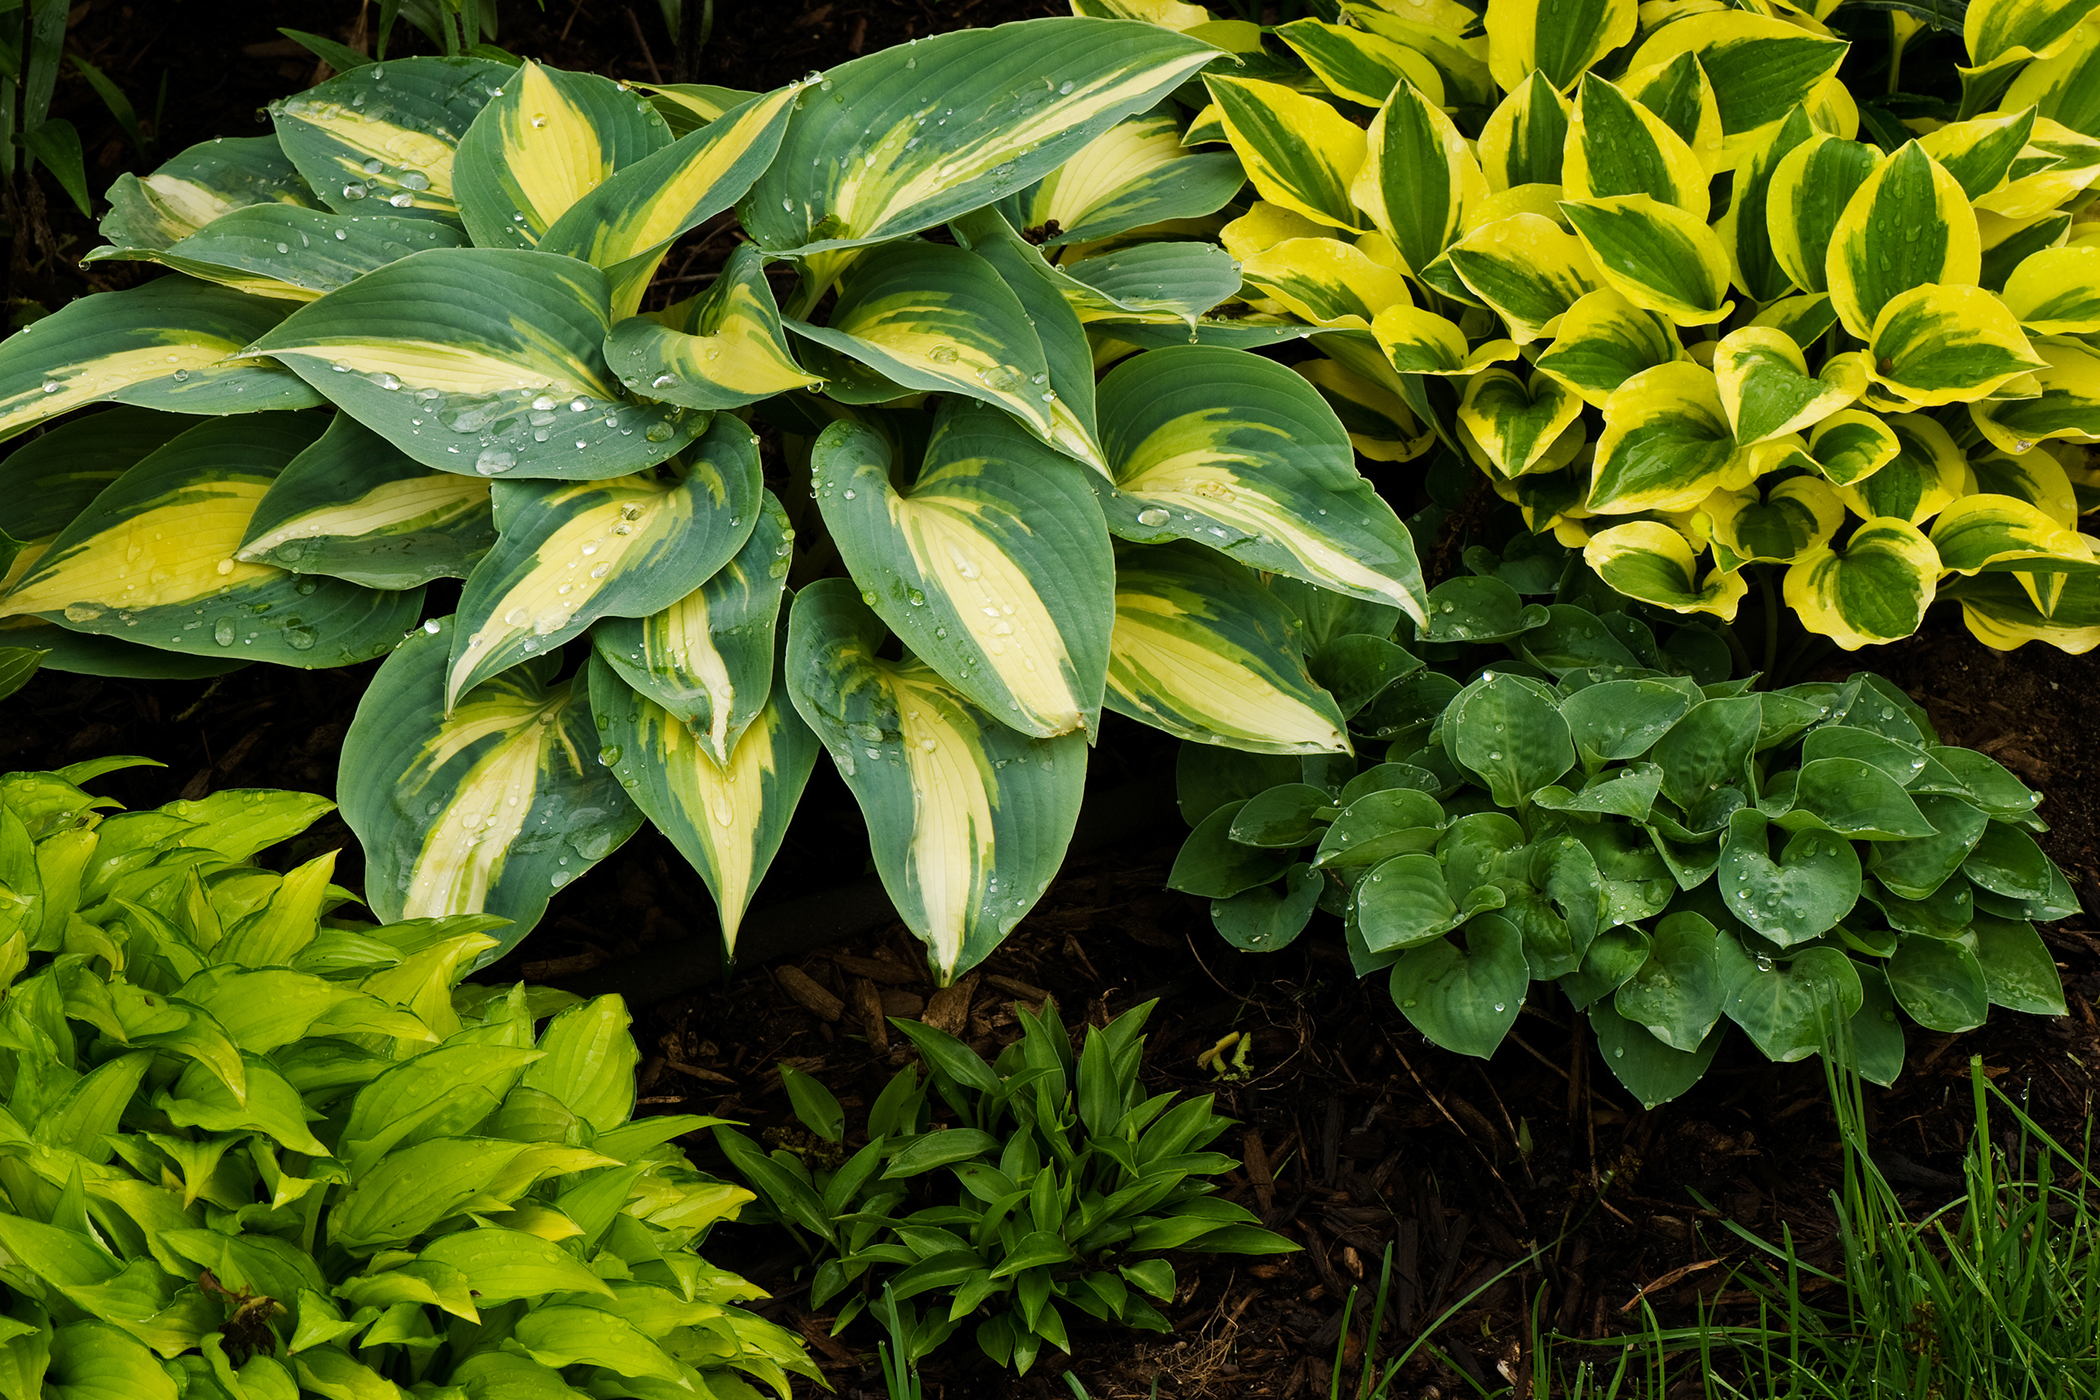 Plantain Lily Poisoning in Cats